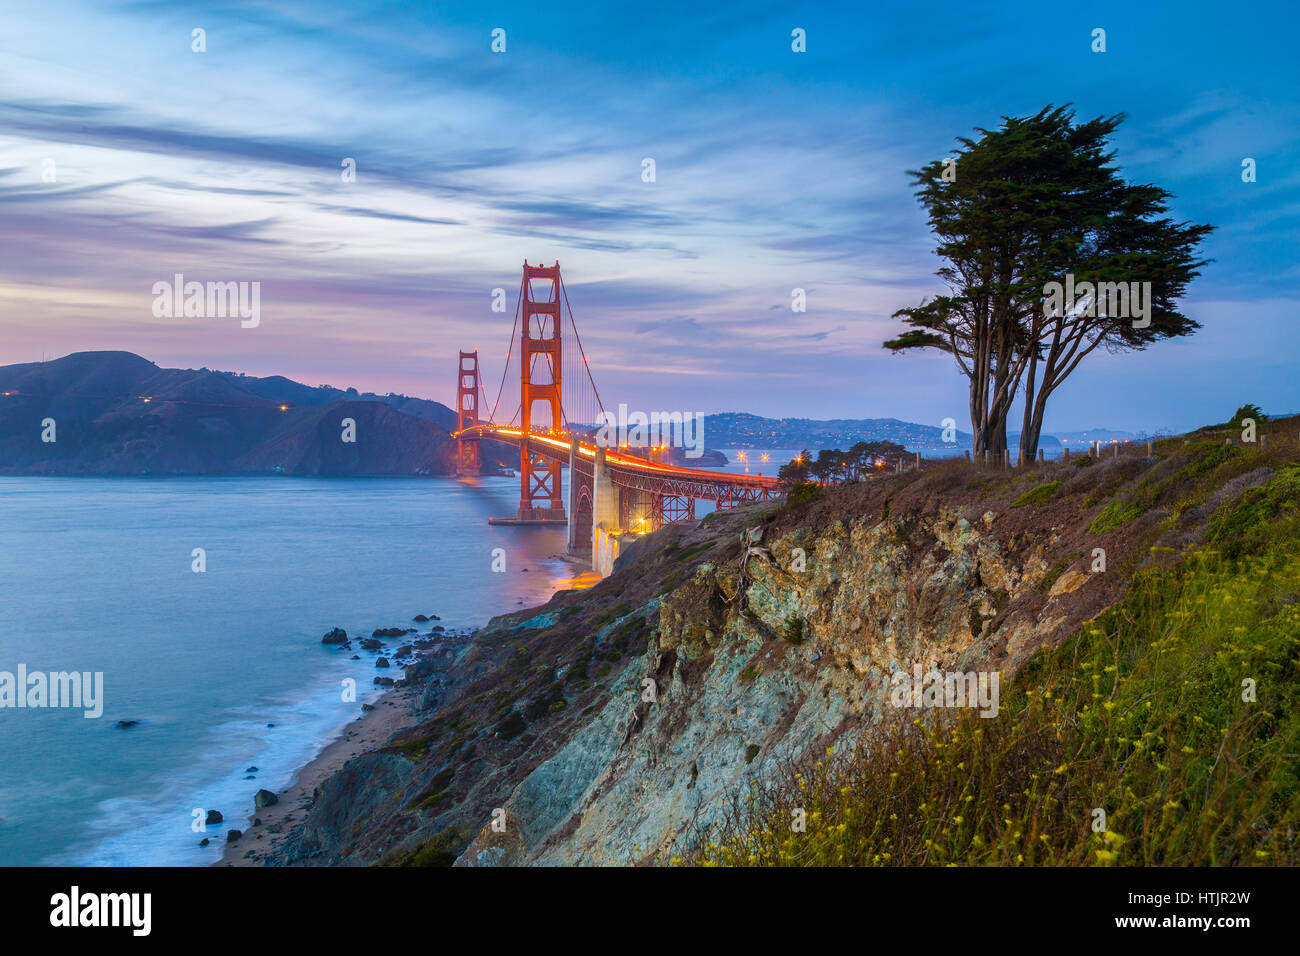 Classic vista panoramica del famoso Golden Gate Bridge visto da scenic Baker Beach in splendida post tramonto crepuscolo Immagini Stock